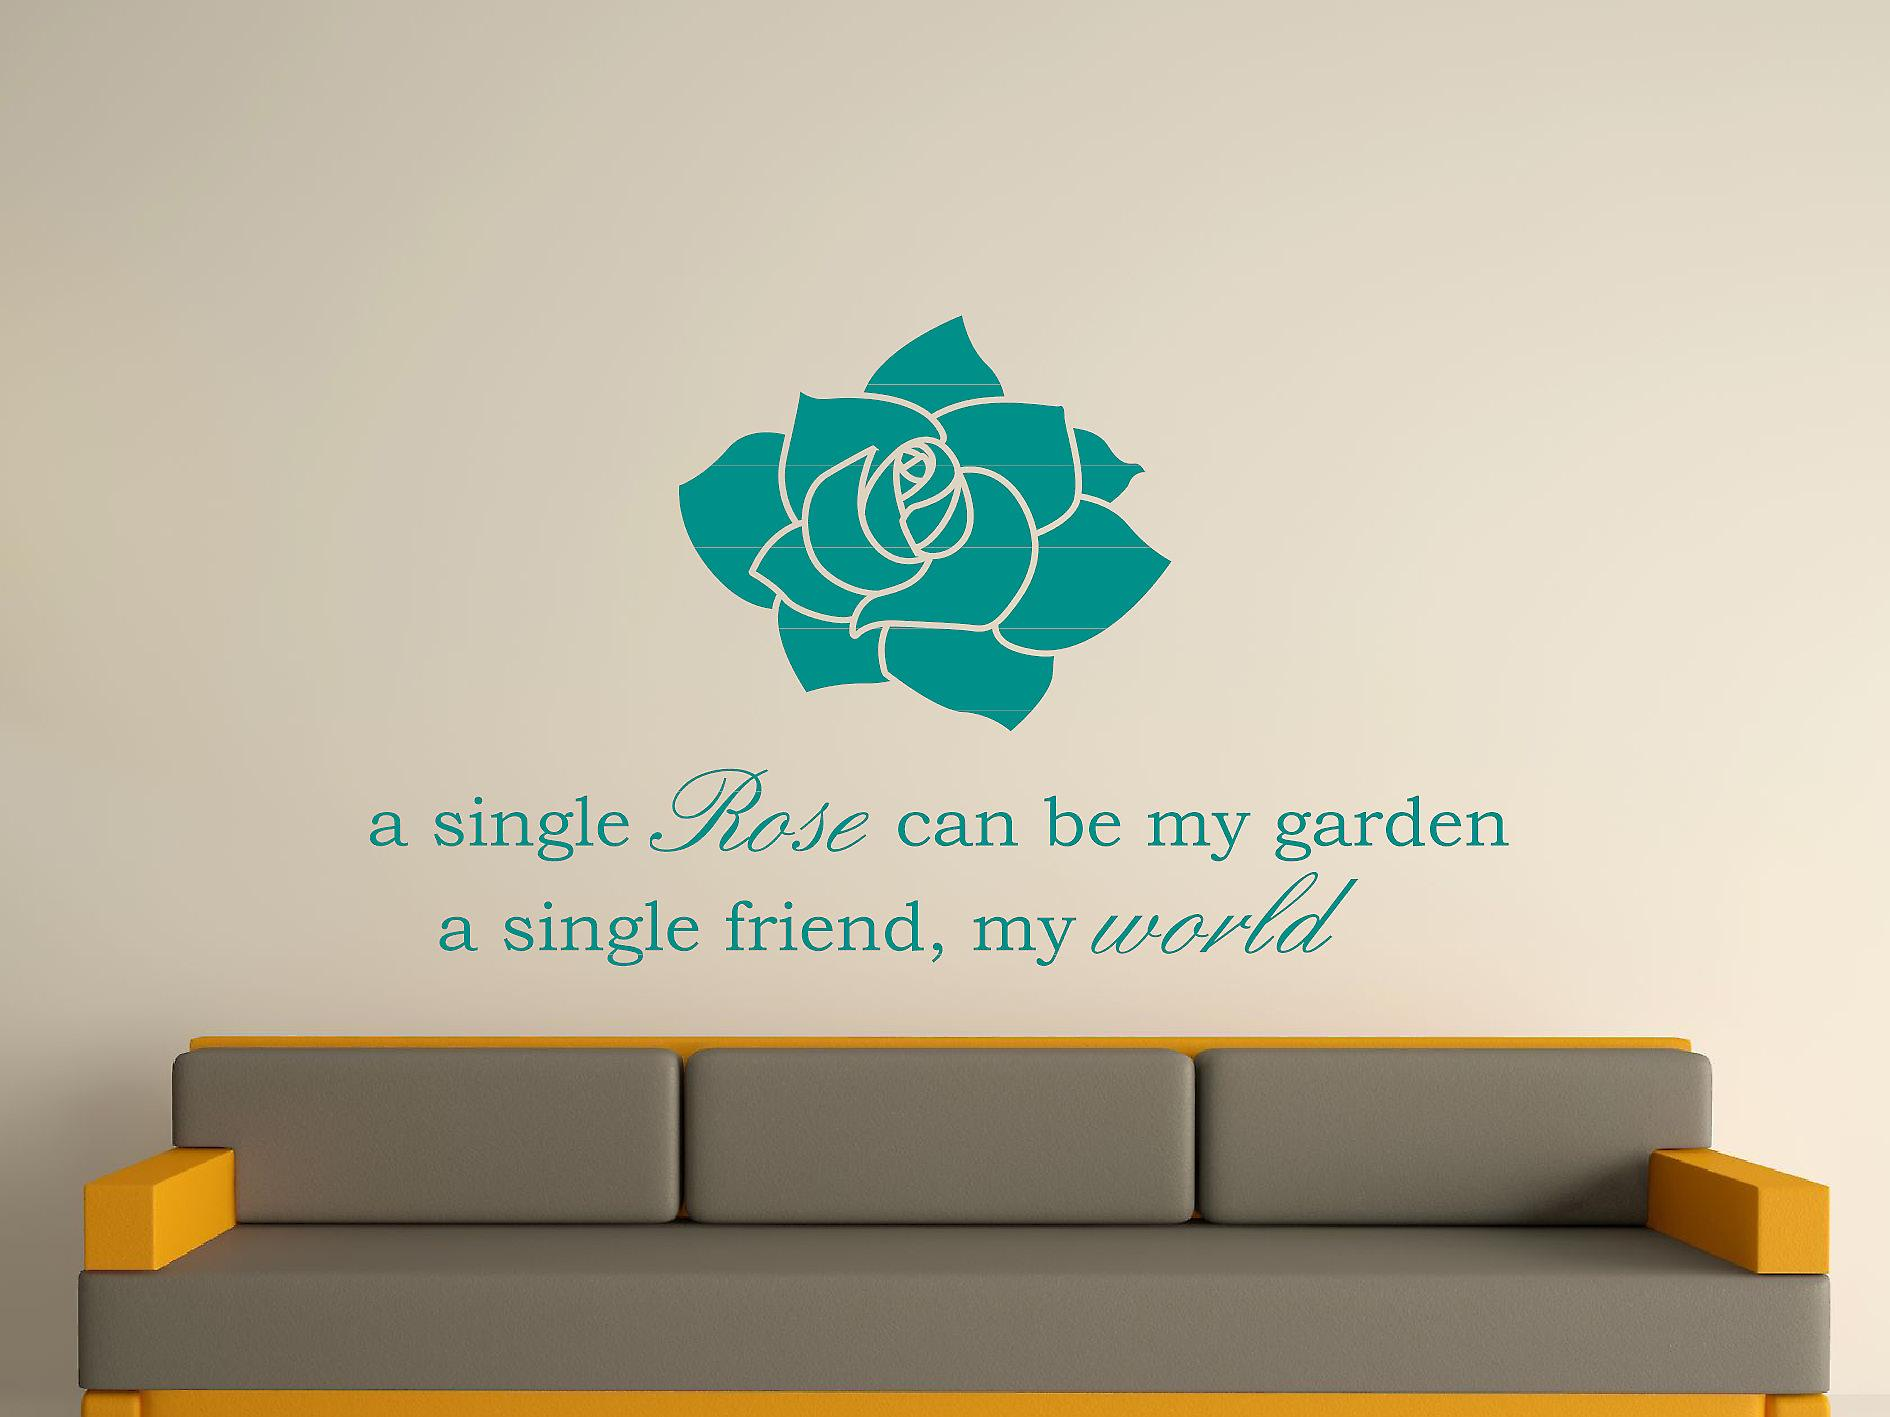 A Single Rose Wall Art autocollants - Aqua Vert